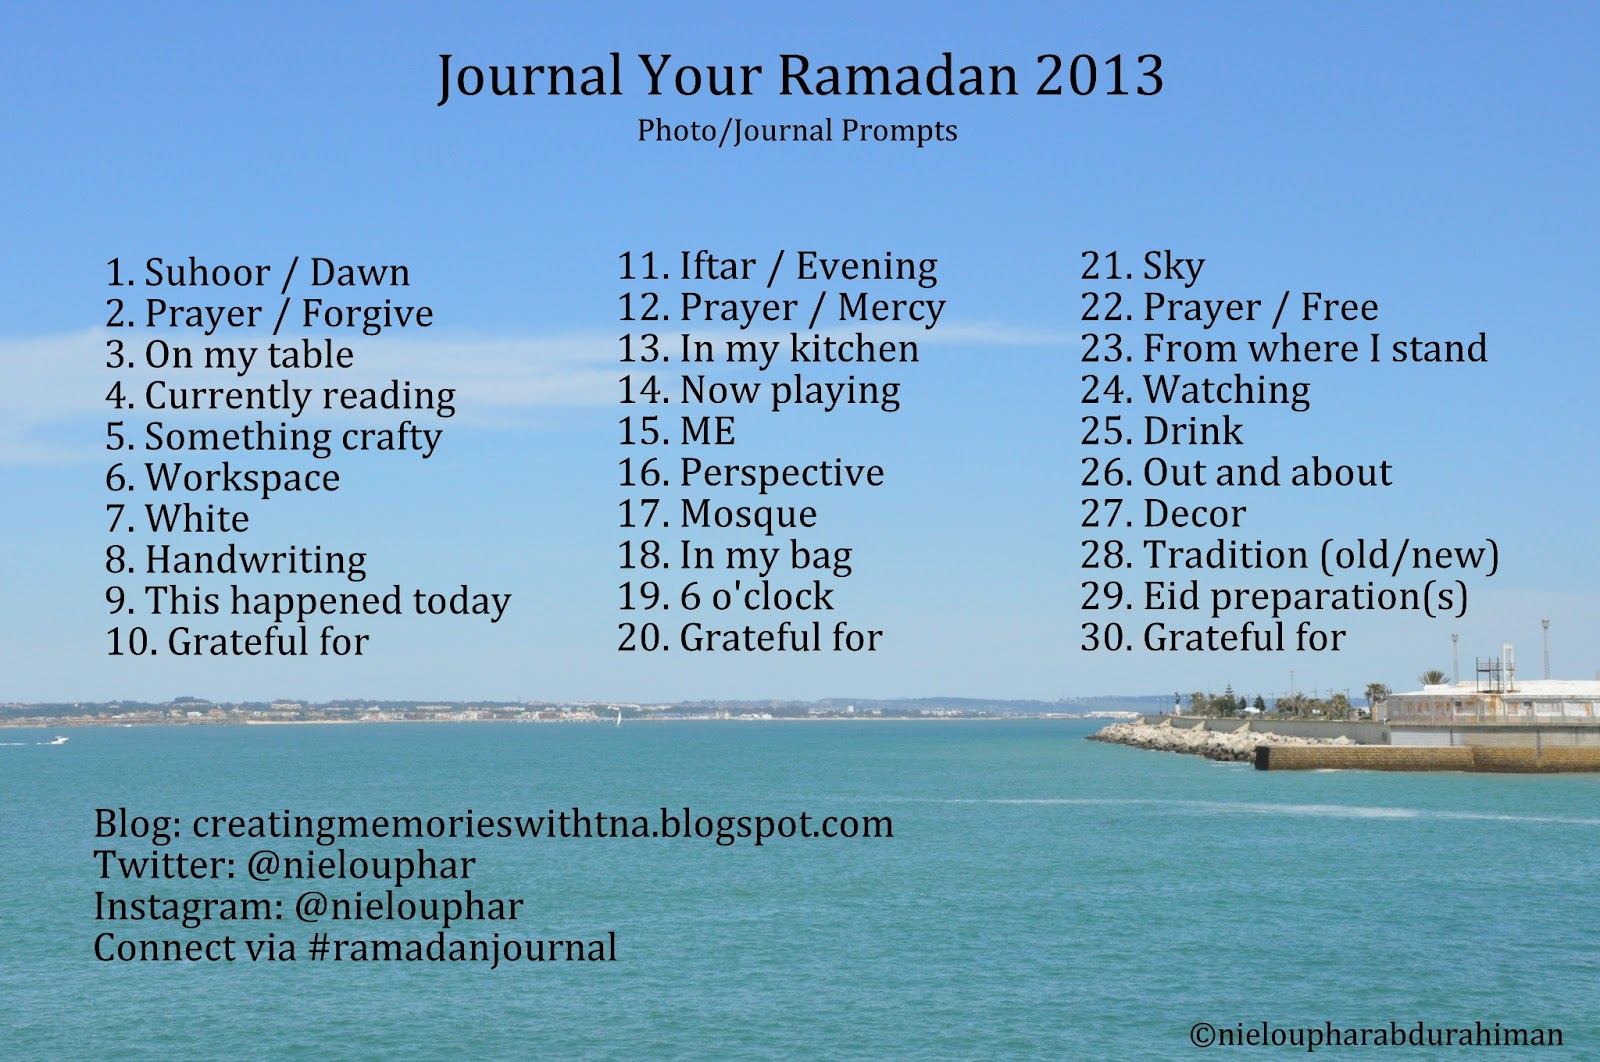 Must see Instagram Ramadan - ramadan+journal+2013  Snapshot_20452 .jpg